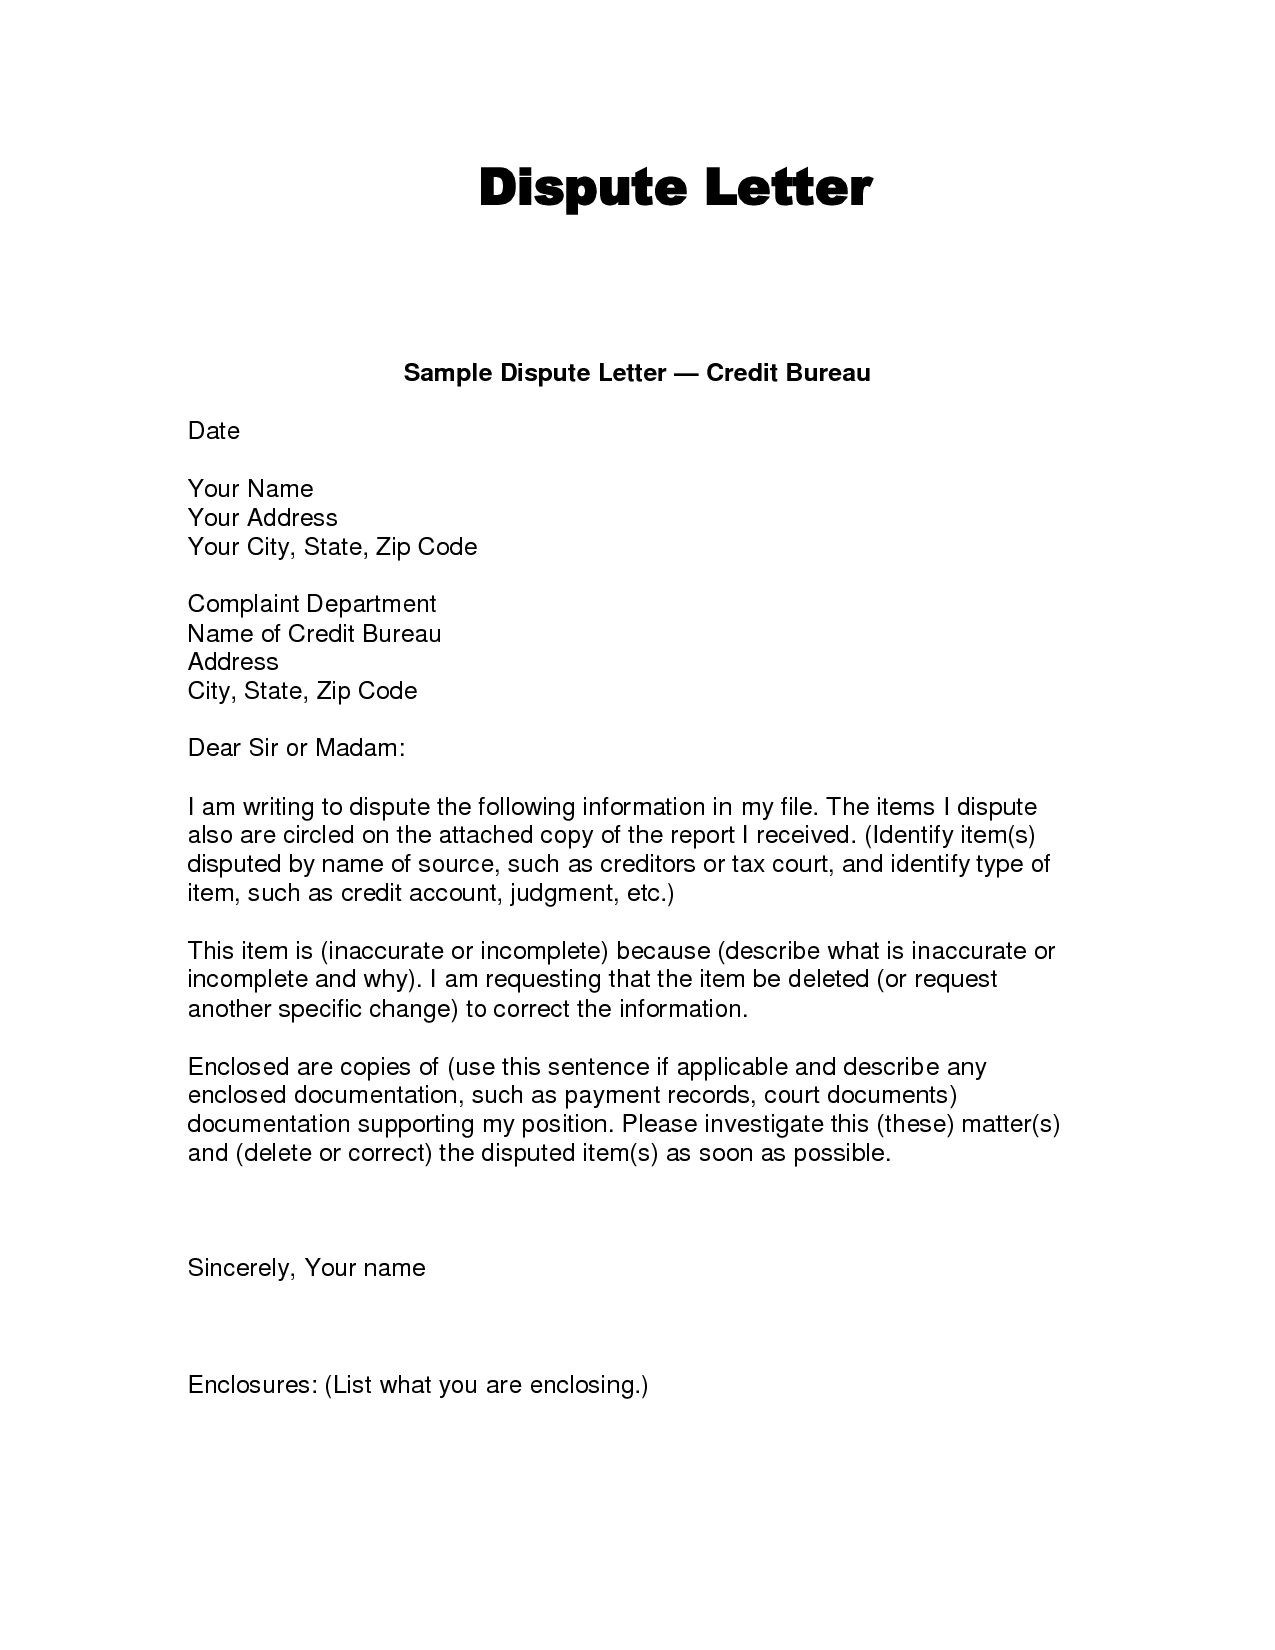 letter template to dispute credit report example-credit dispute letter templates 2-g